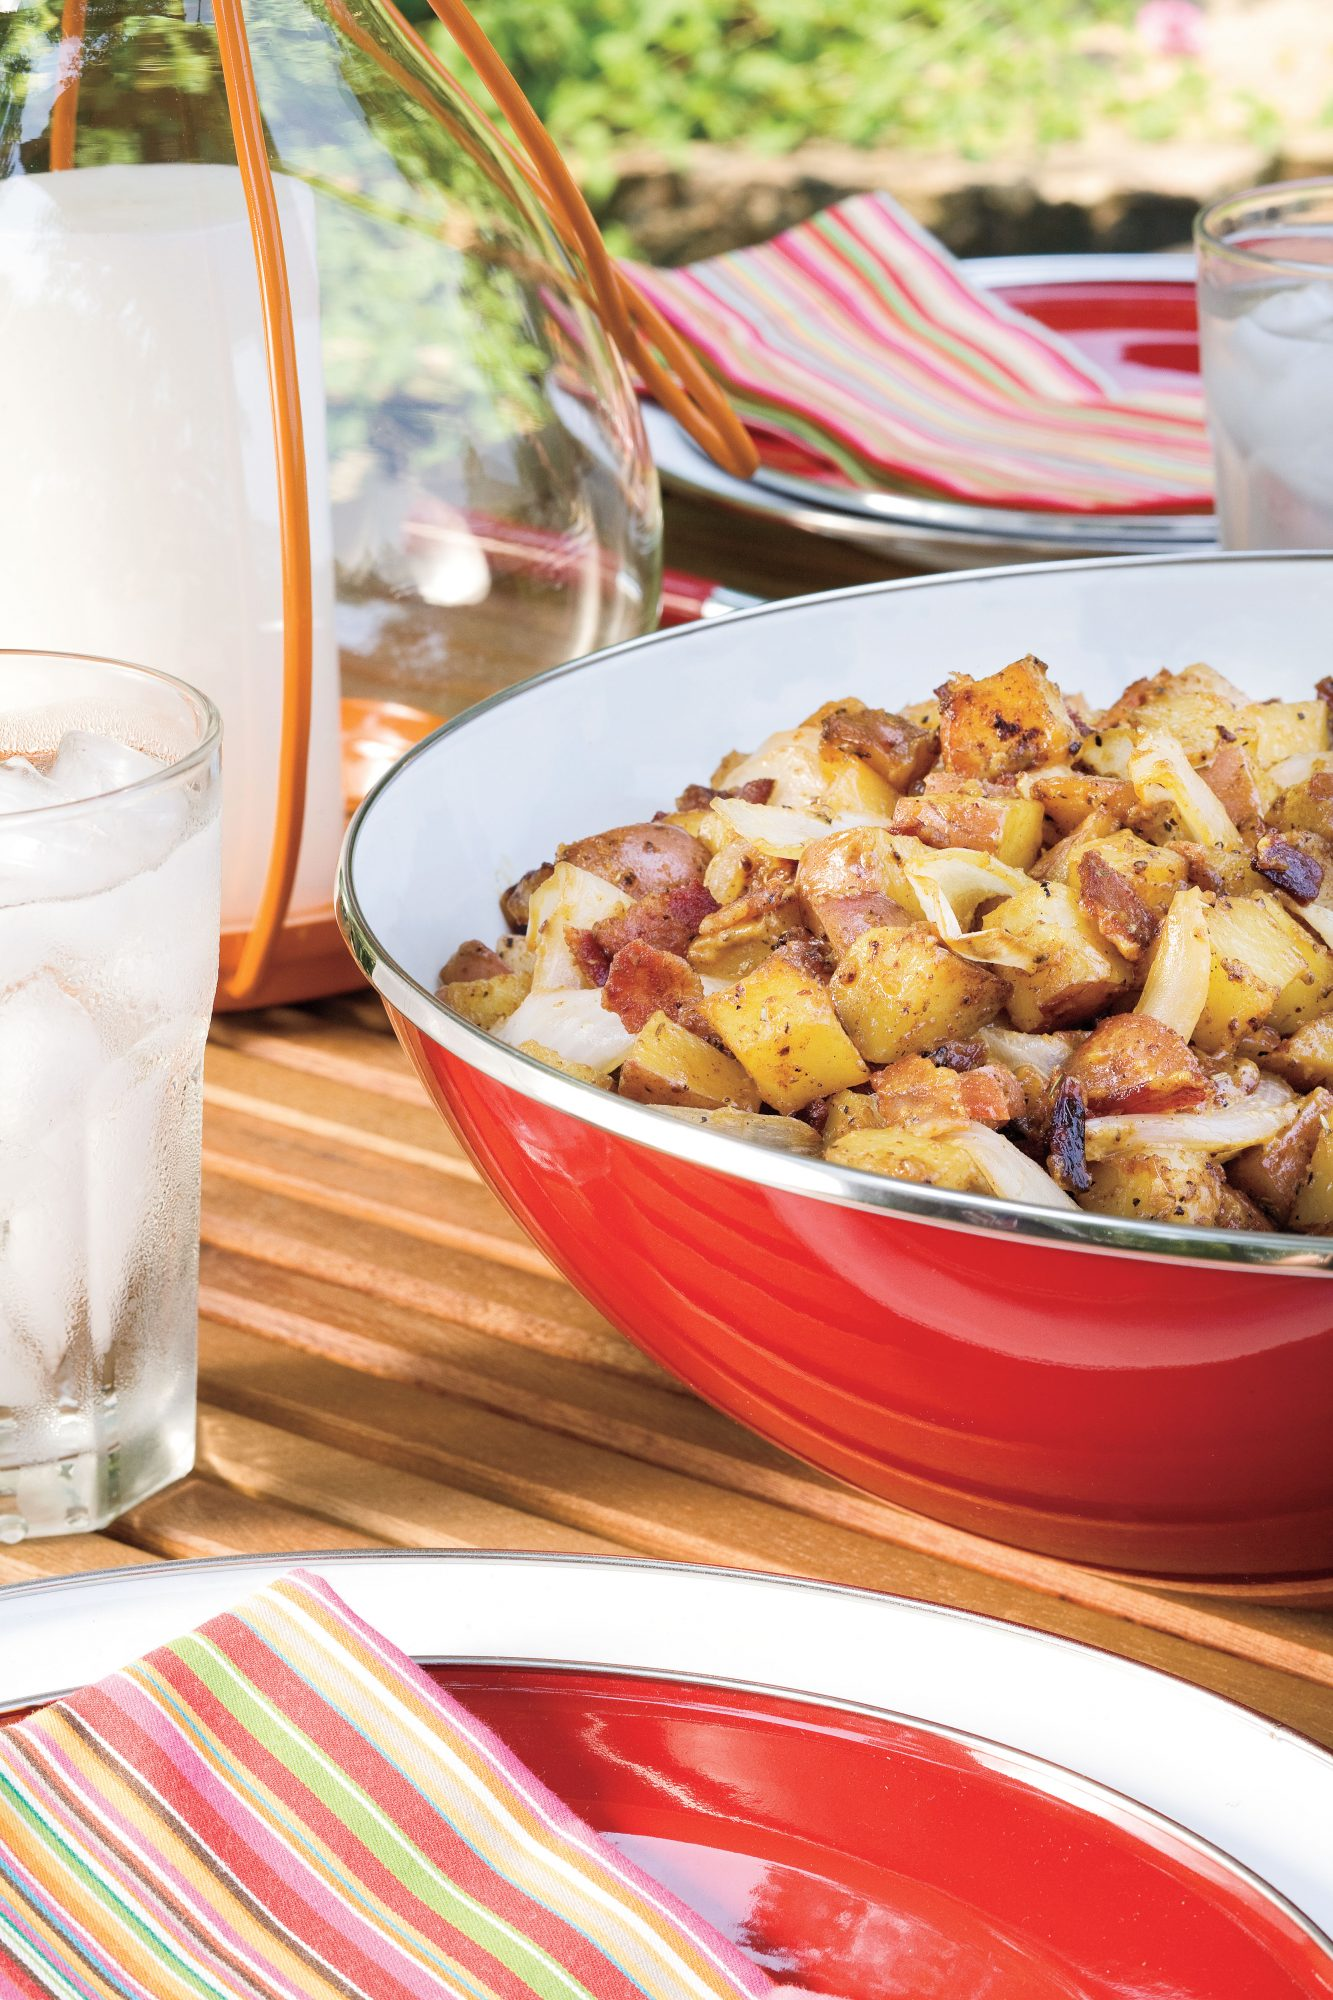 Vegetarian Grilling Recipes: Grilled Potato Salad